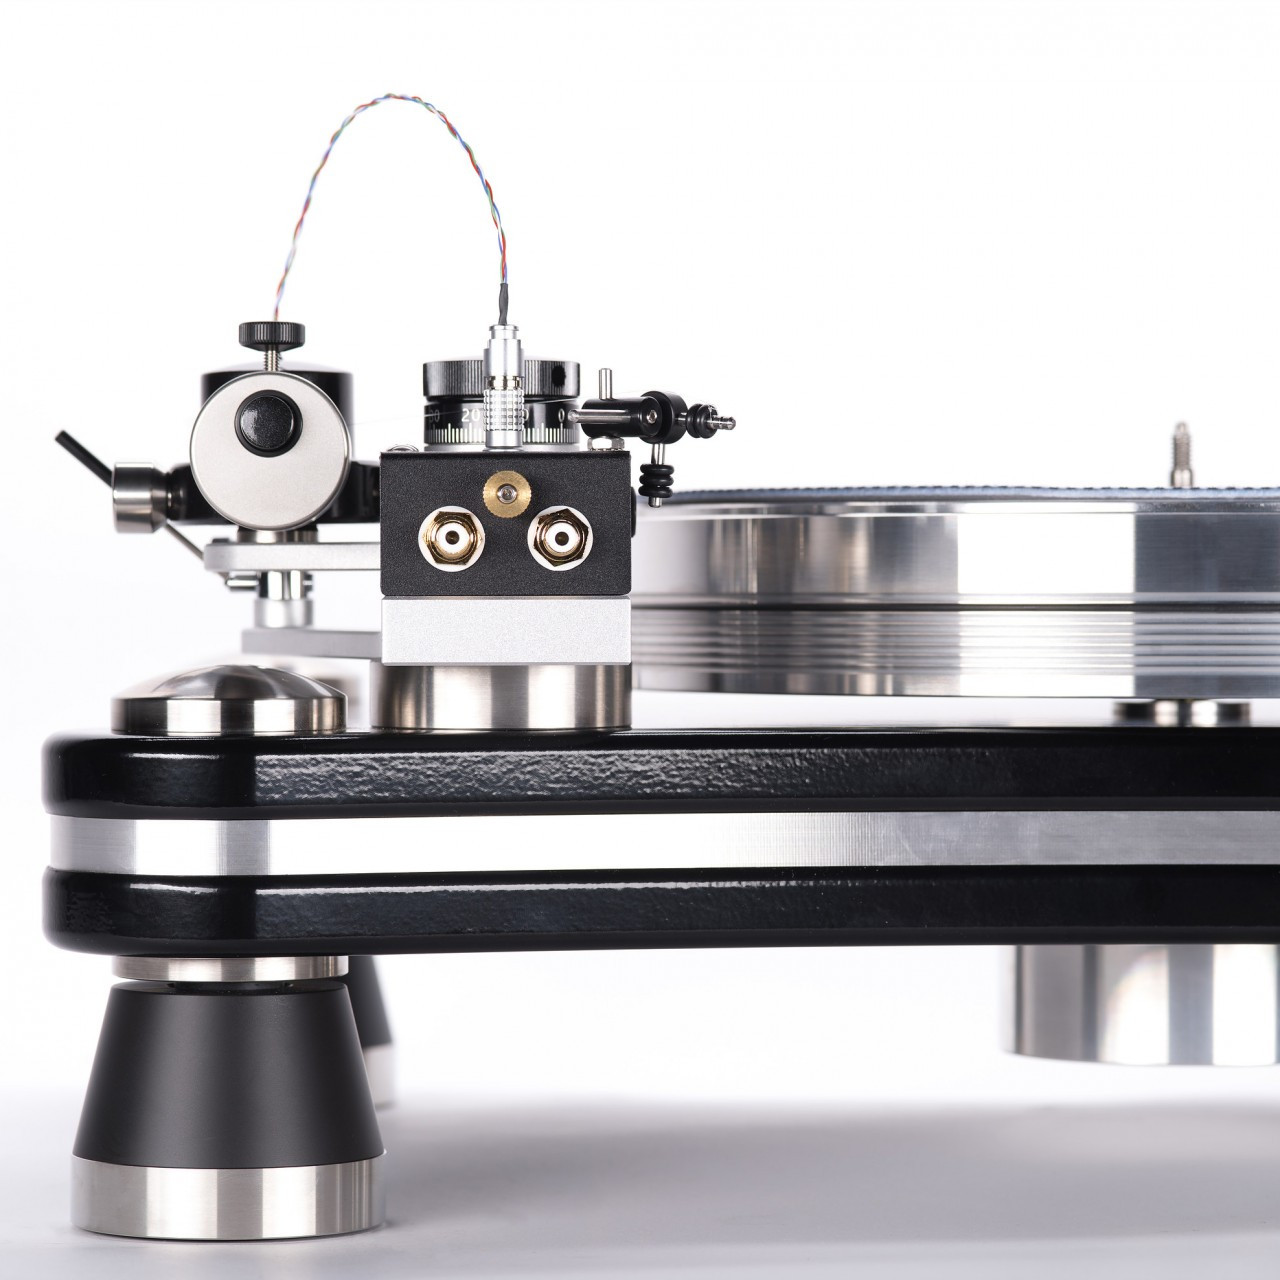 VPI Prime Signature turntable open box